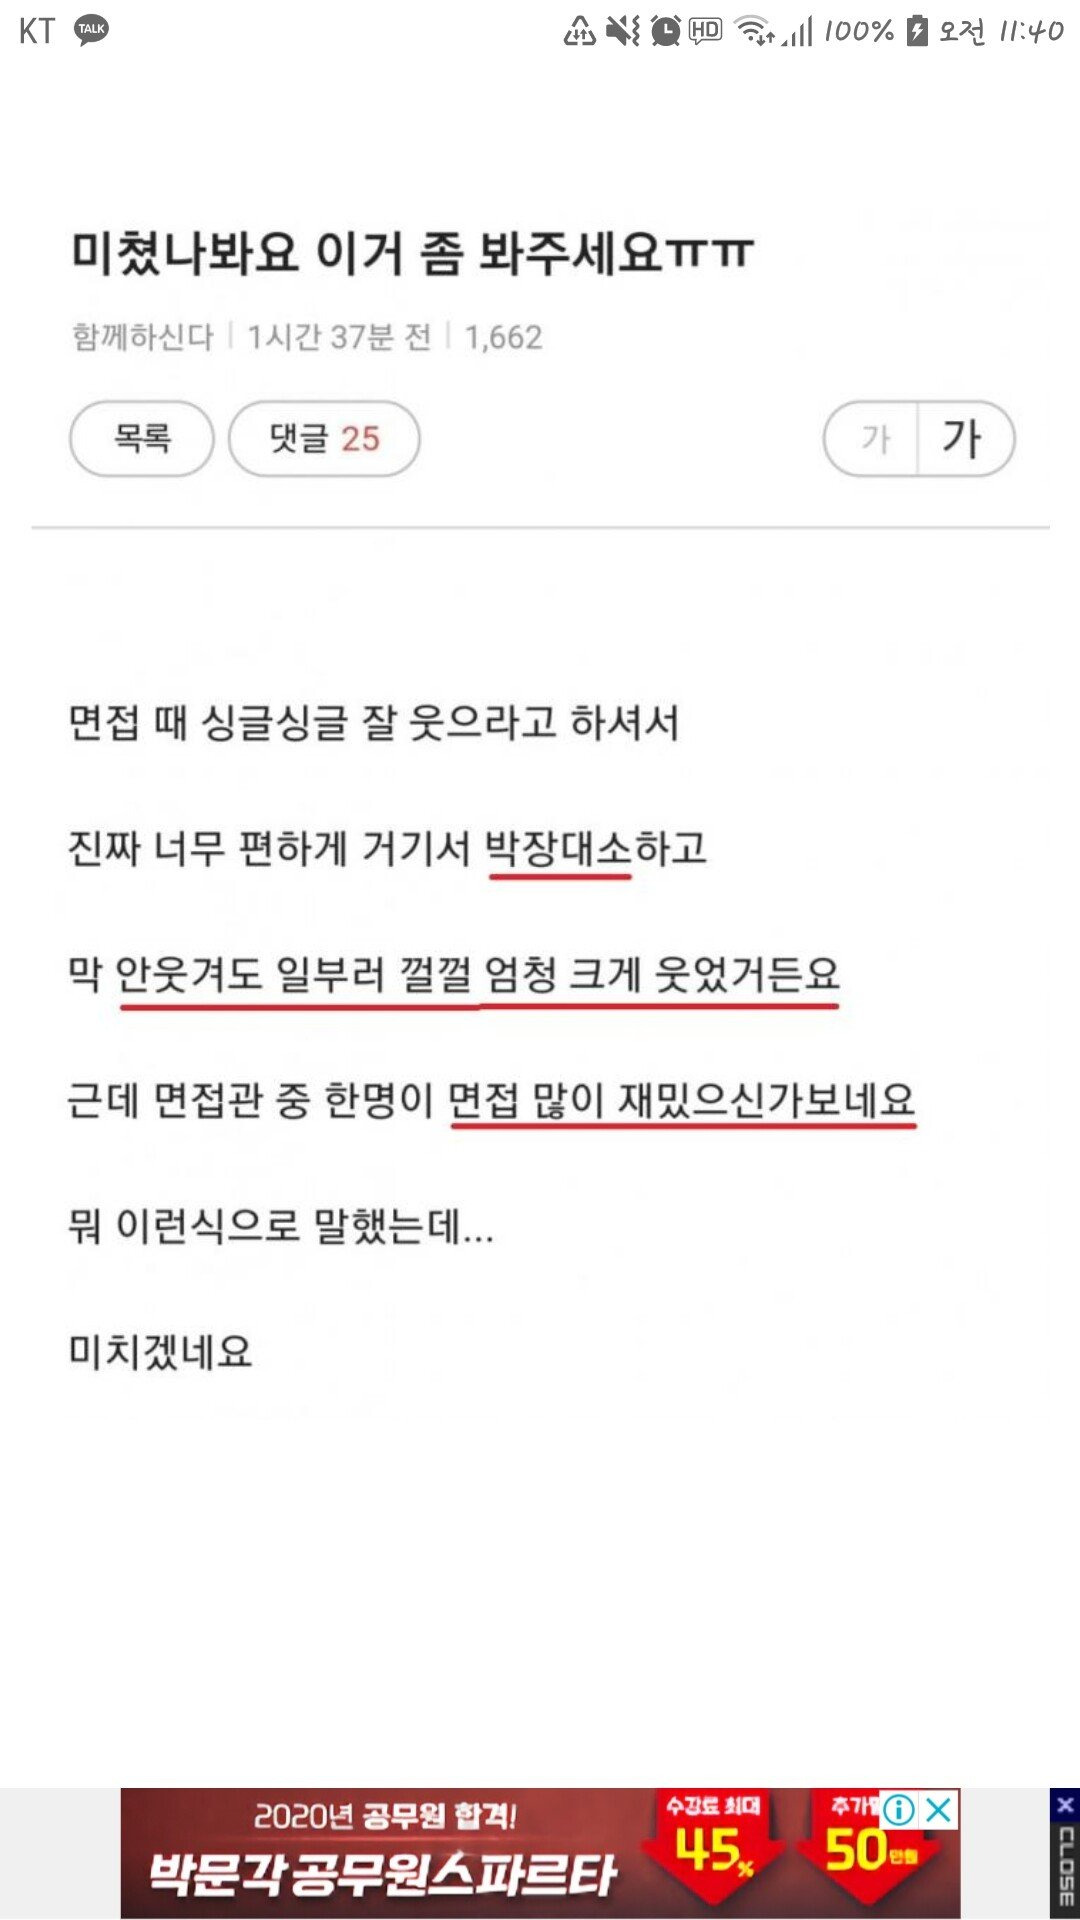 Screenshot_20190612-114044_Samsung Internet.jpg 공무원 면접 탈락예정자들.jpg